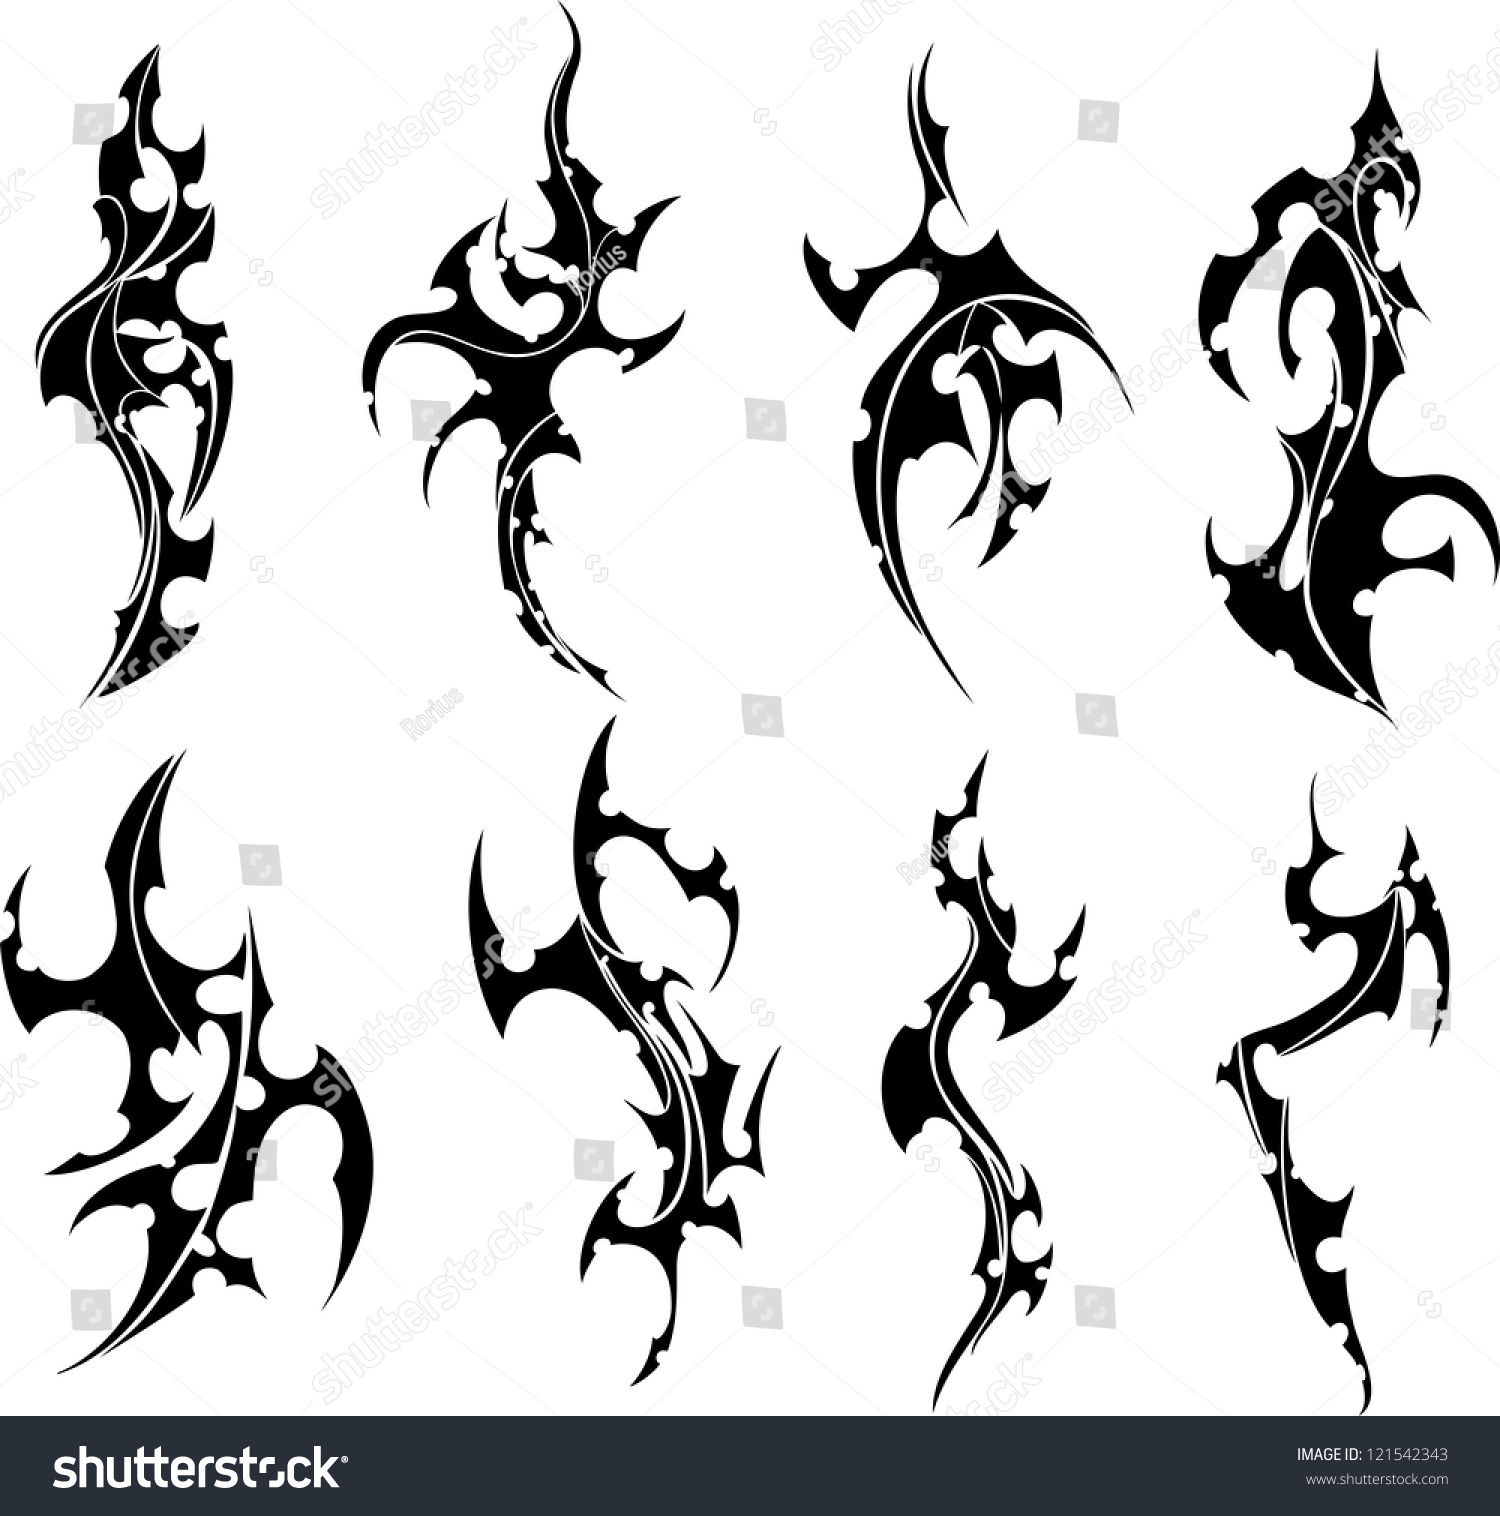 Tribal-Tattoos stock-vector-set-of-tribal-tattoos-black-and-white-vector-illustrations-121542343